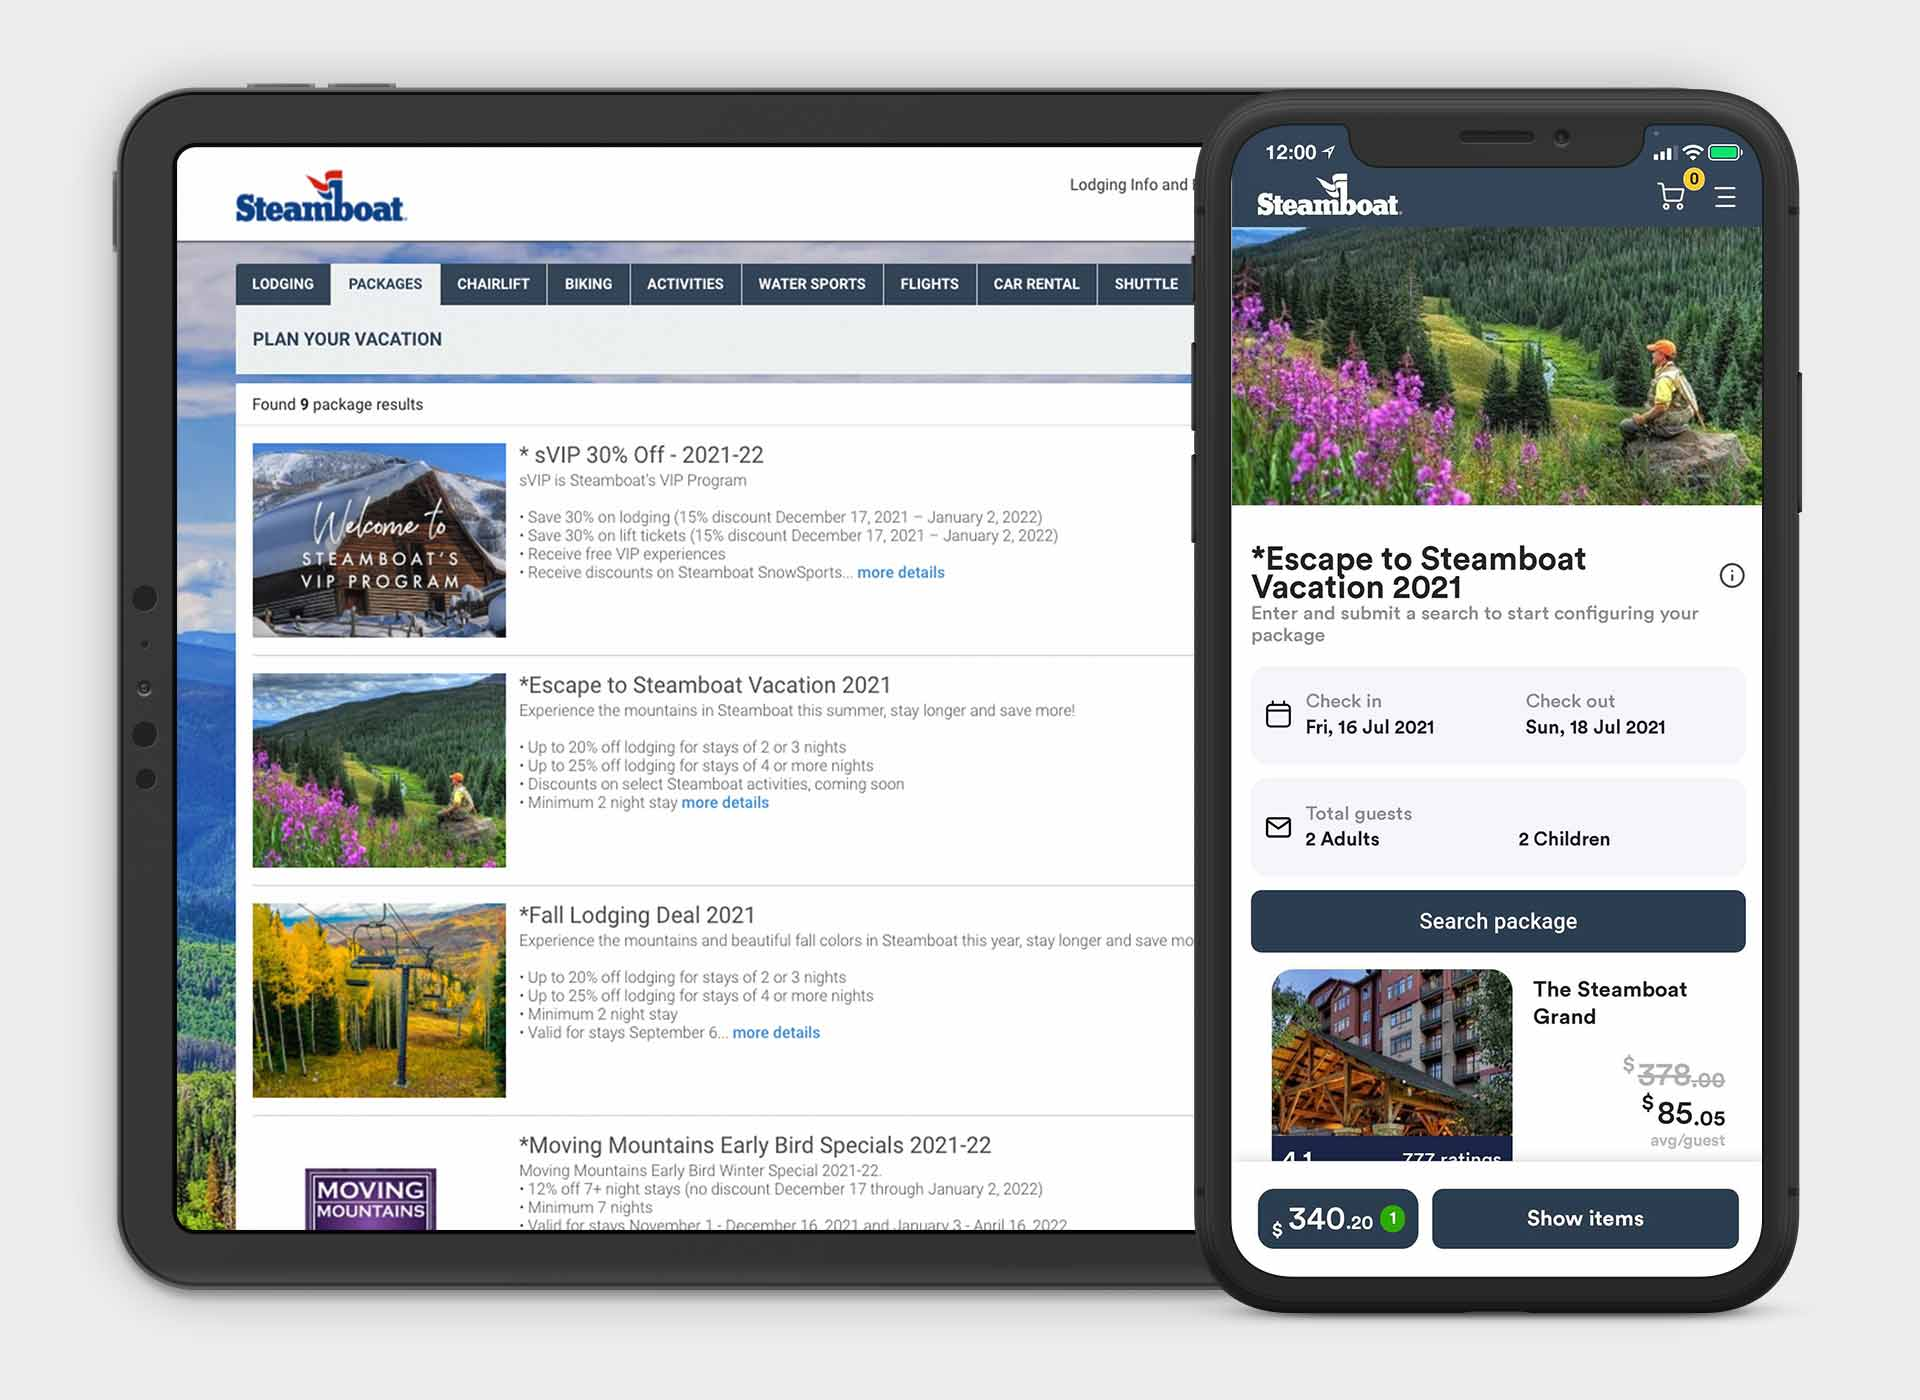 direct-booking-solution-mobile-app-online-booking-reservation-system-packages